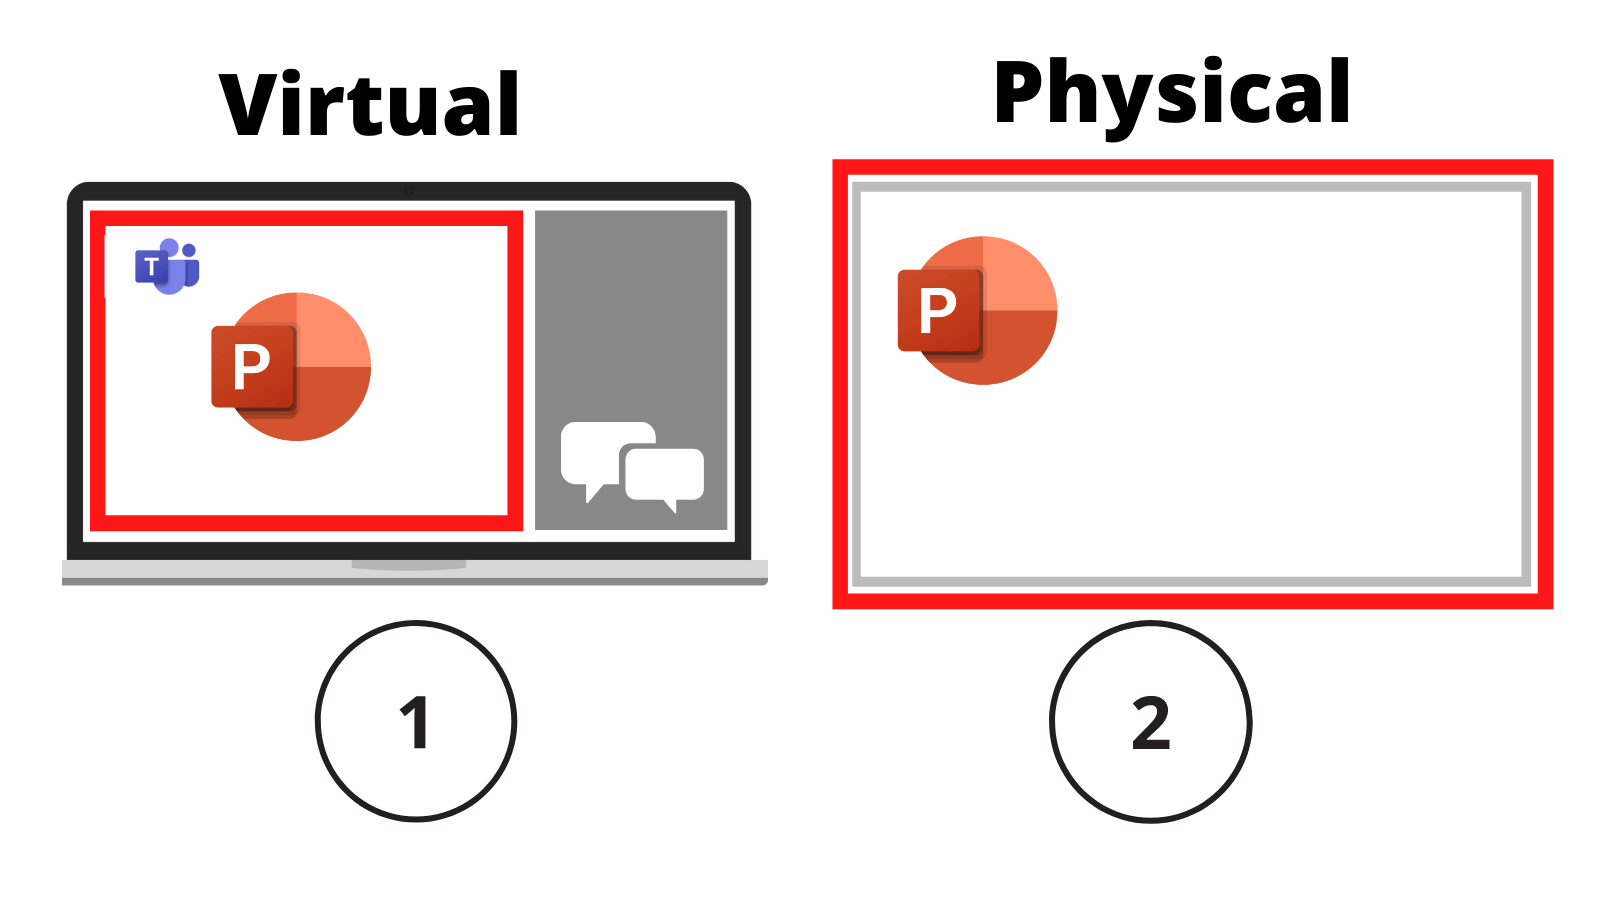 Two screens, one labelled '1, virtual' showing PowerPoint and Teams, the other labelled '2, physical' showing full screen PowerPoint.